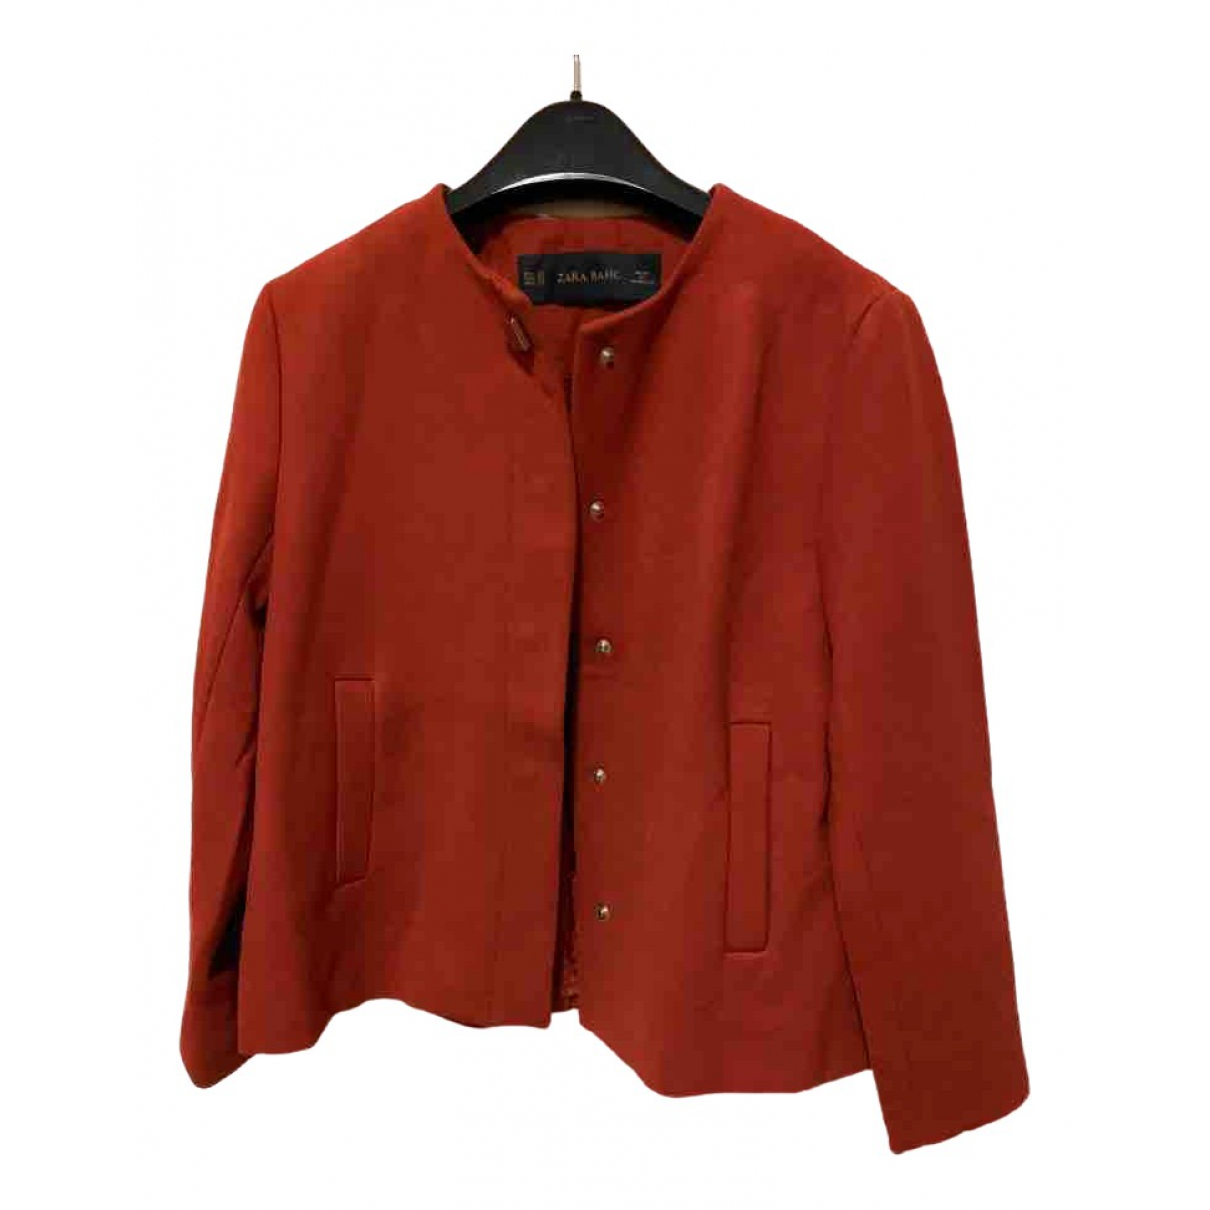 Zara \N Jacke in  Rot Synthetik